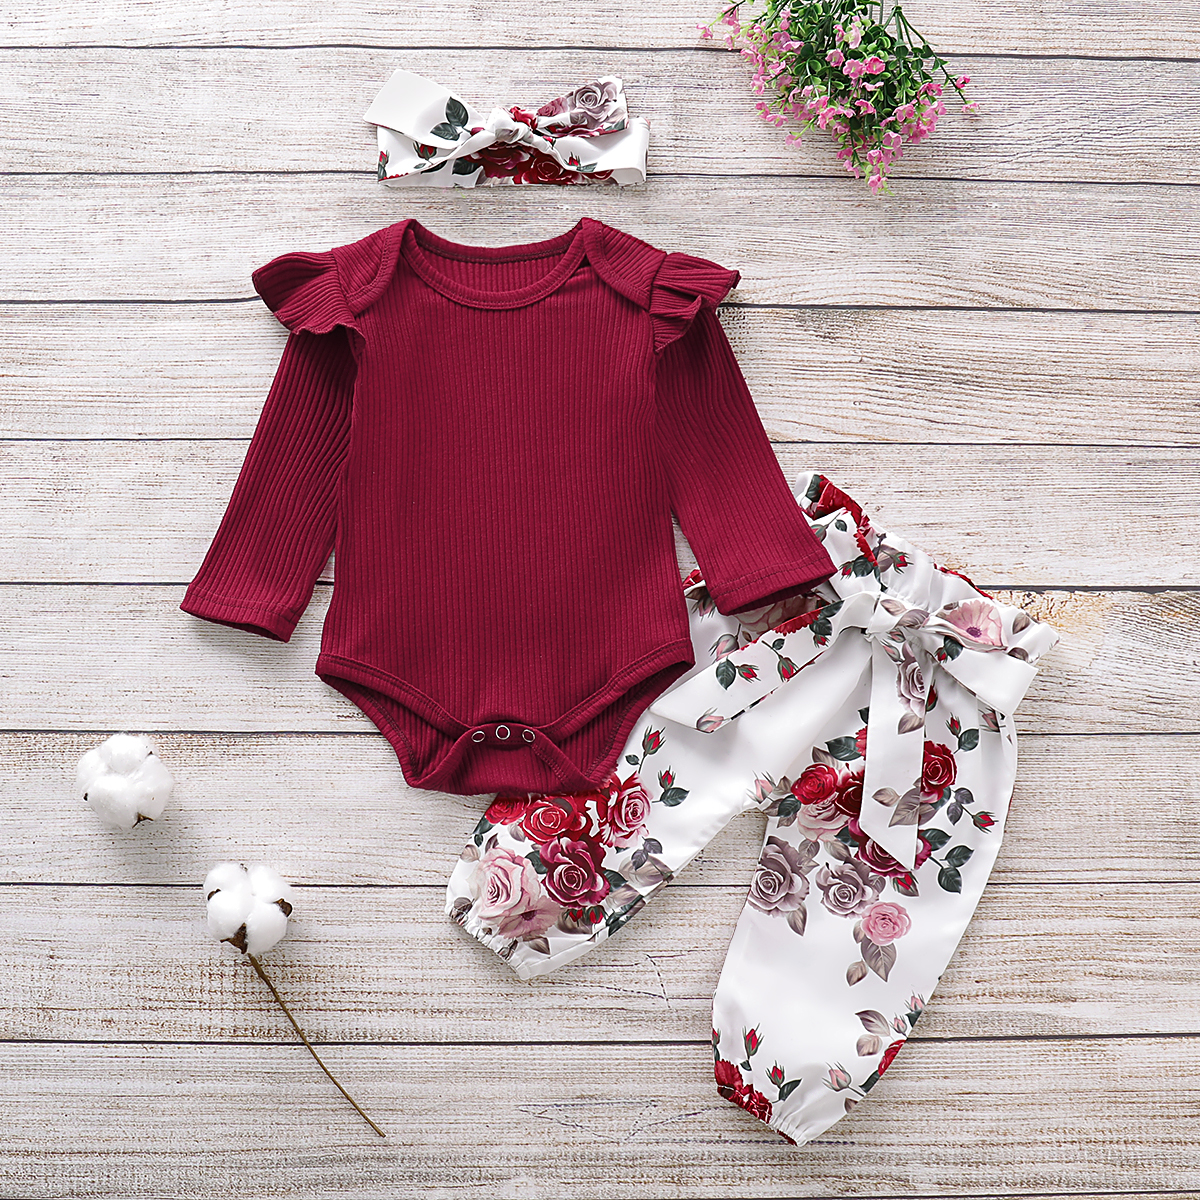 Pudcoco Newborn Baby Girl Clothes Knitting Cotton Long Sleeve Romper Tops Flower Print Long Pants Headband 3Pcs Outfits Clothes